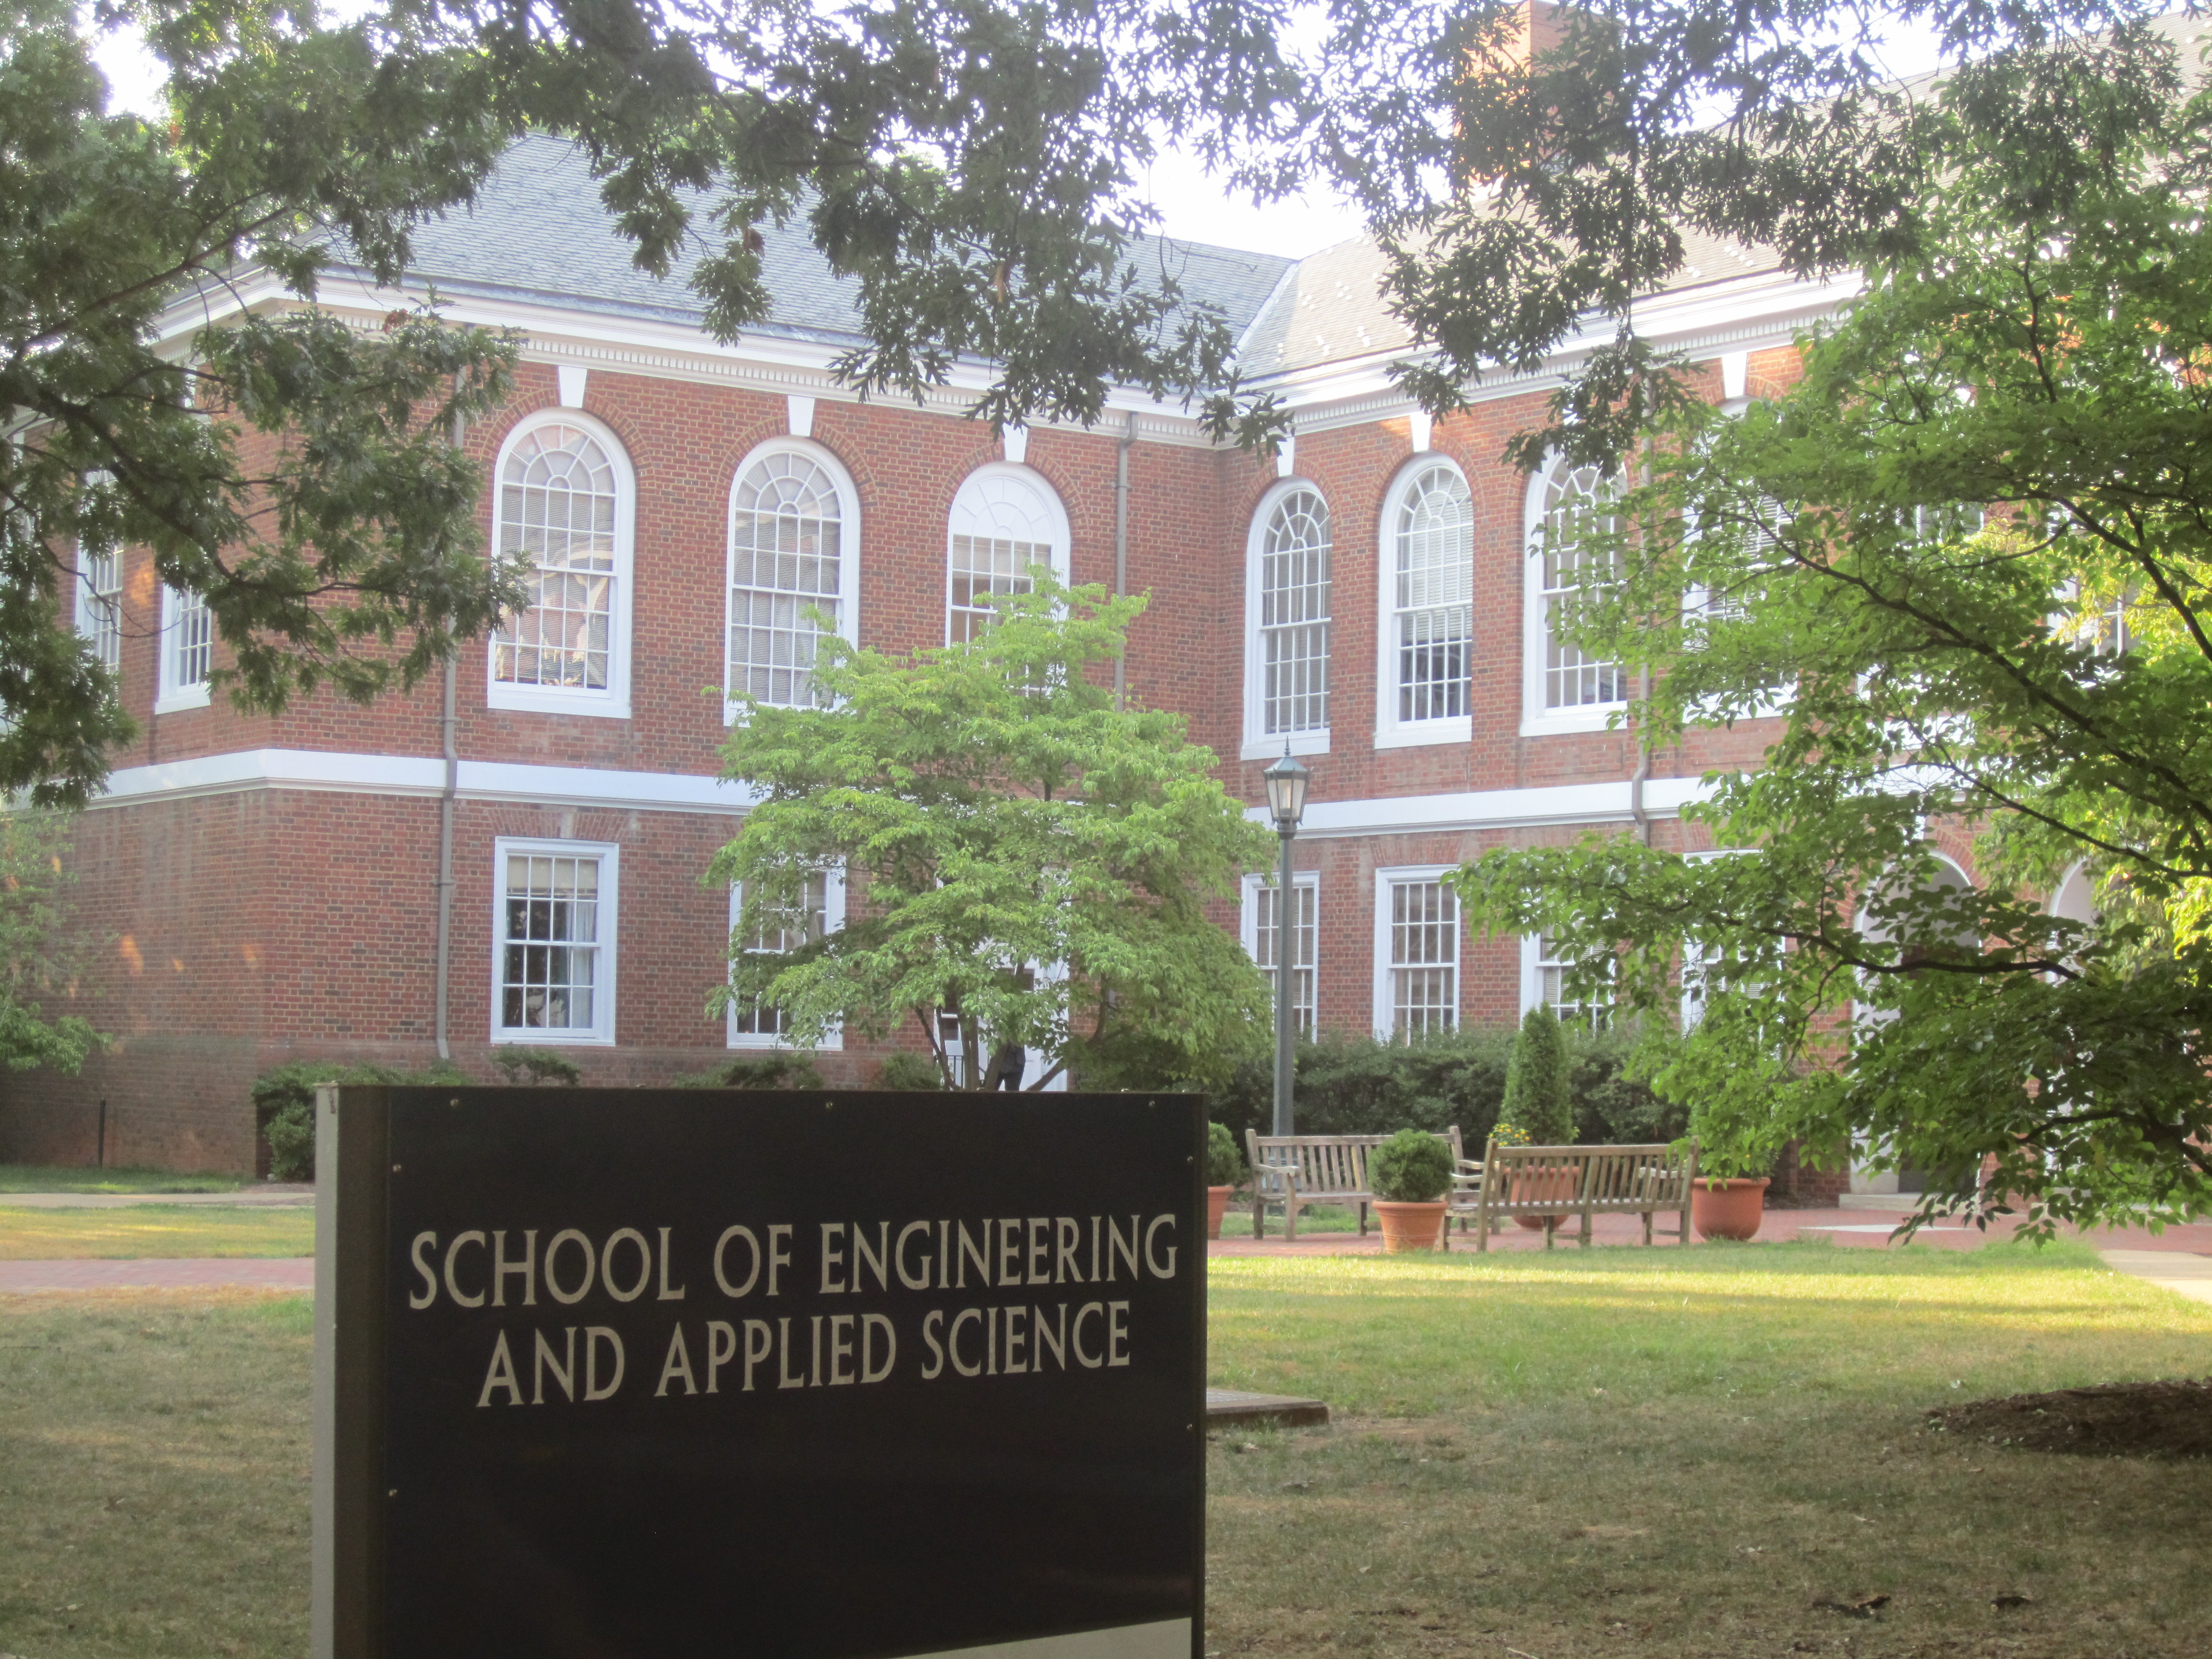 School of Engineering and Applied Science